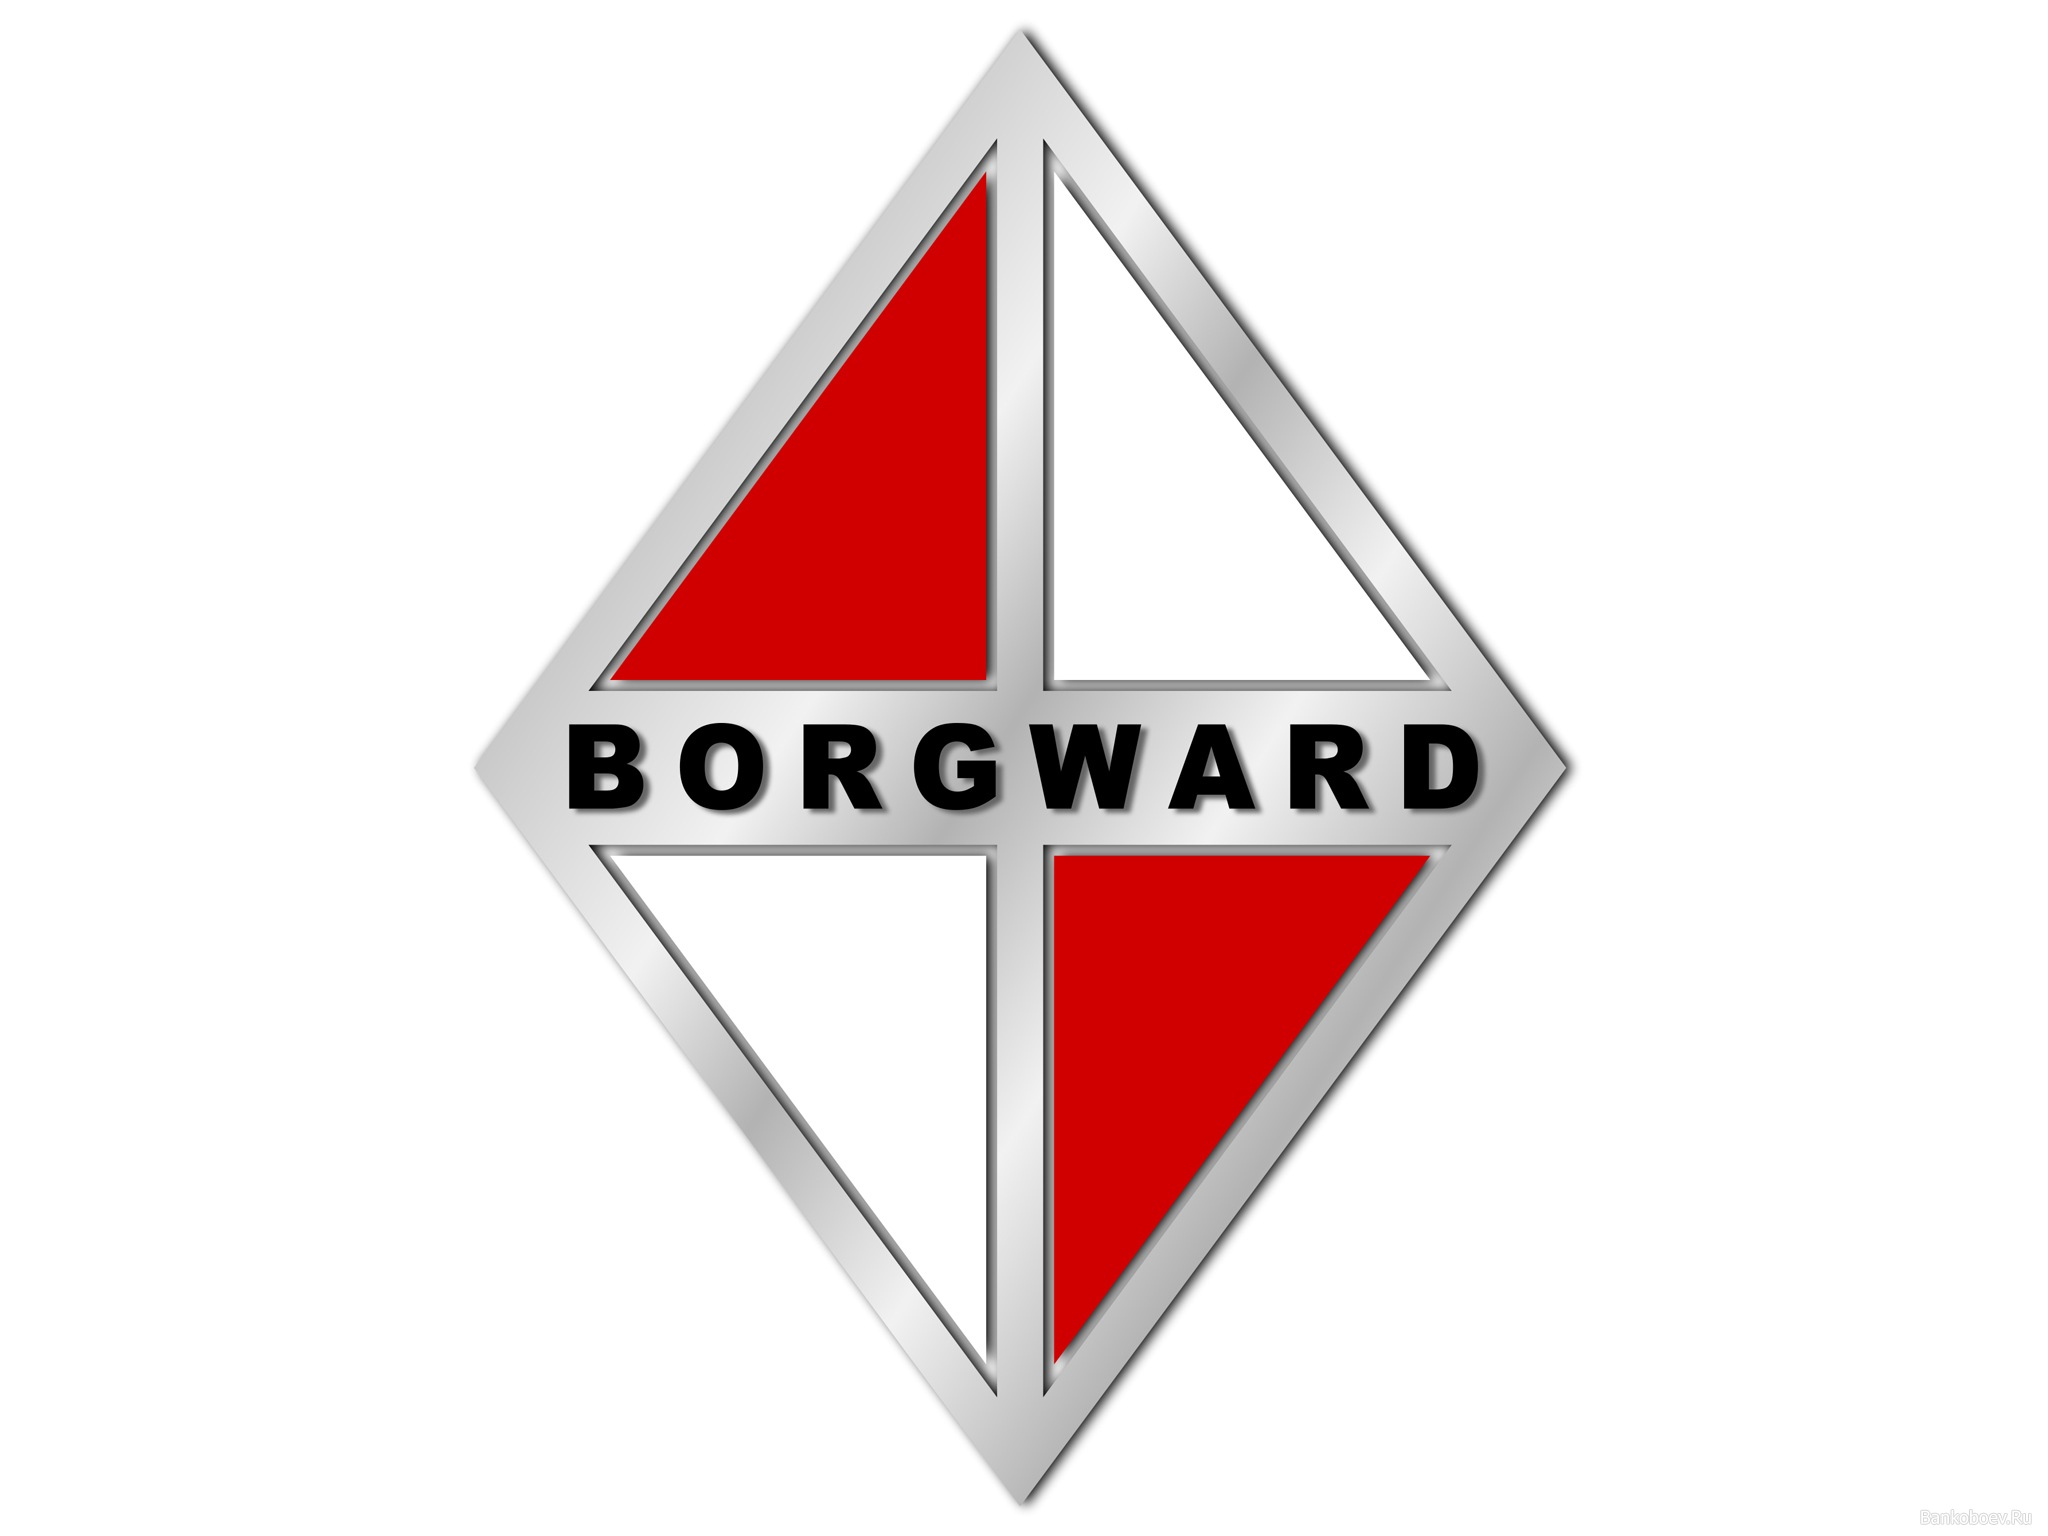 Borgward Logo Wallpaper